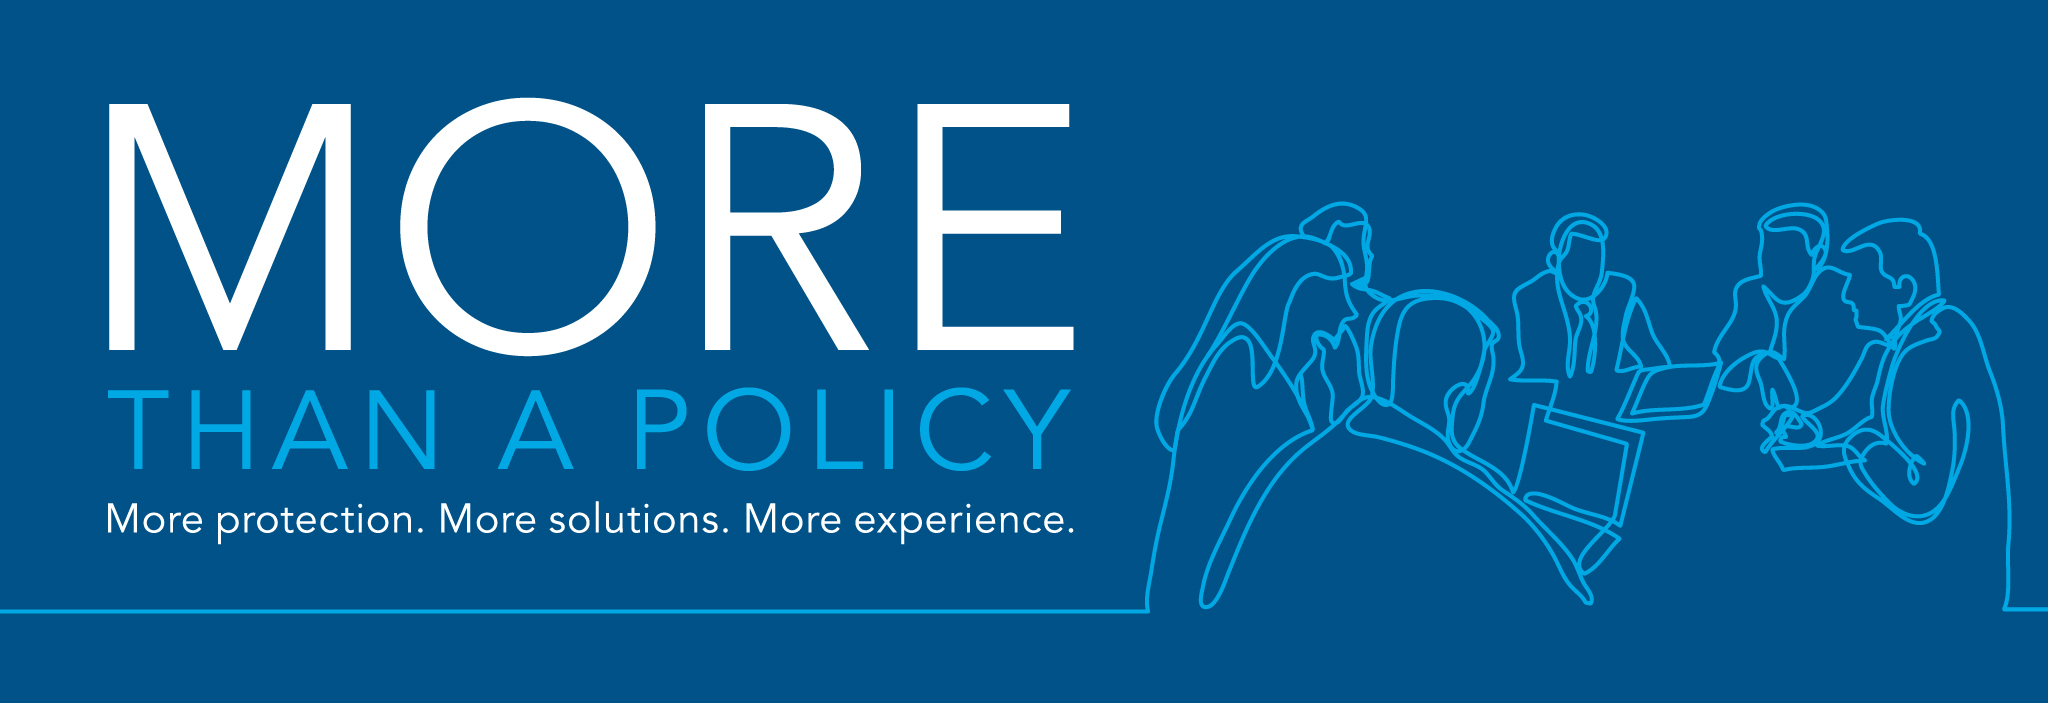 More than a policy. More protection. More Solutions. More experience.